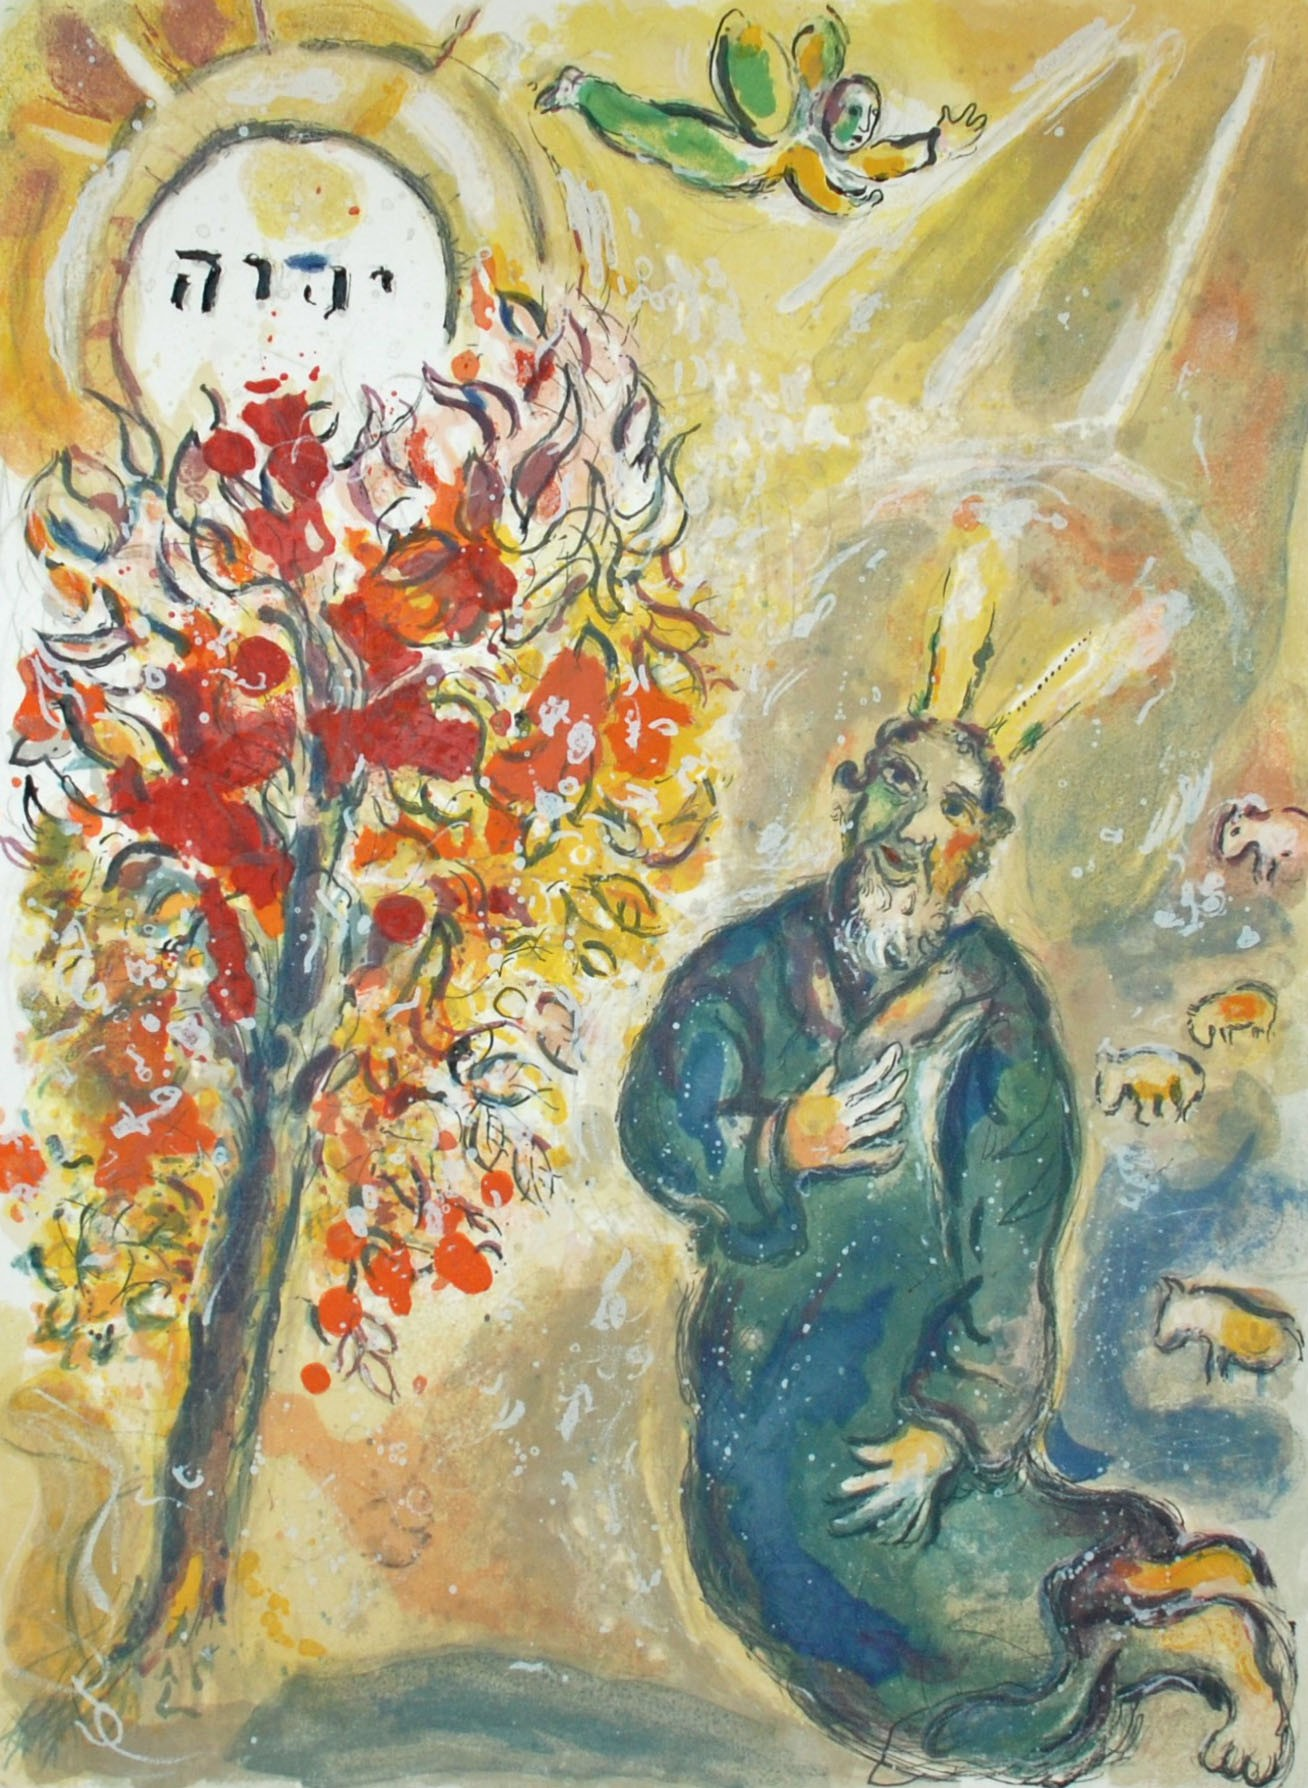 Moses and the Burning Bush, Marc Chagall